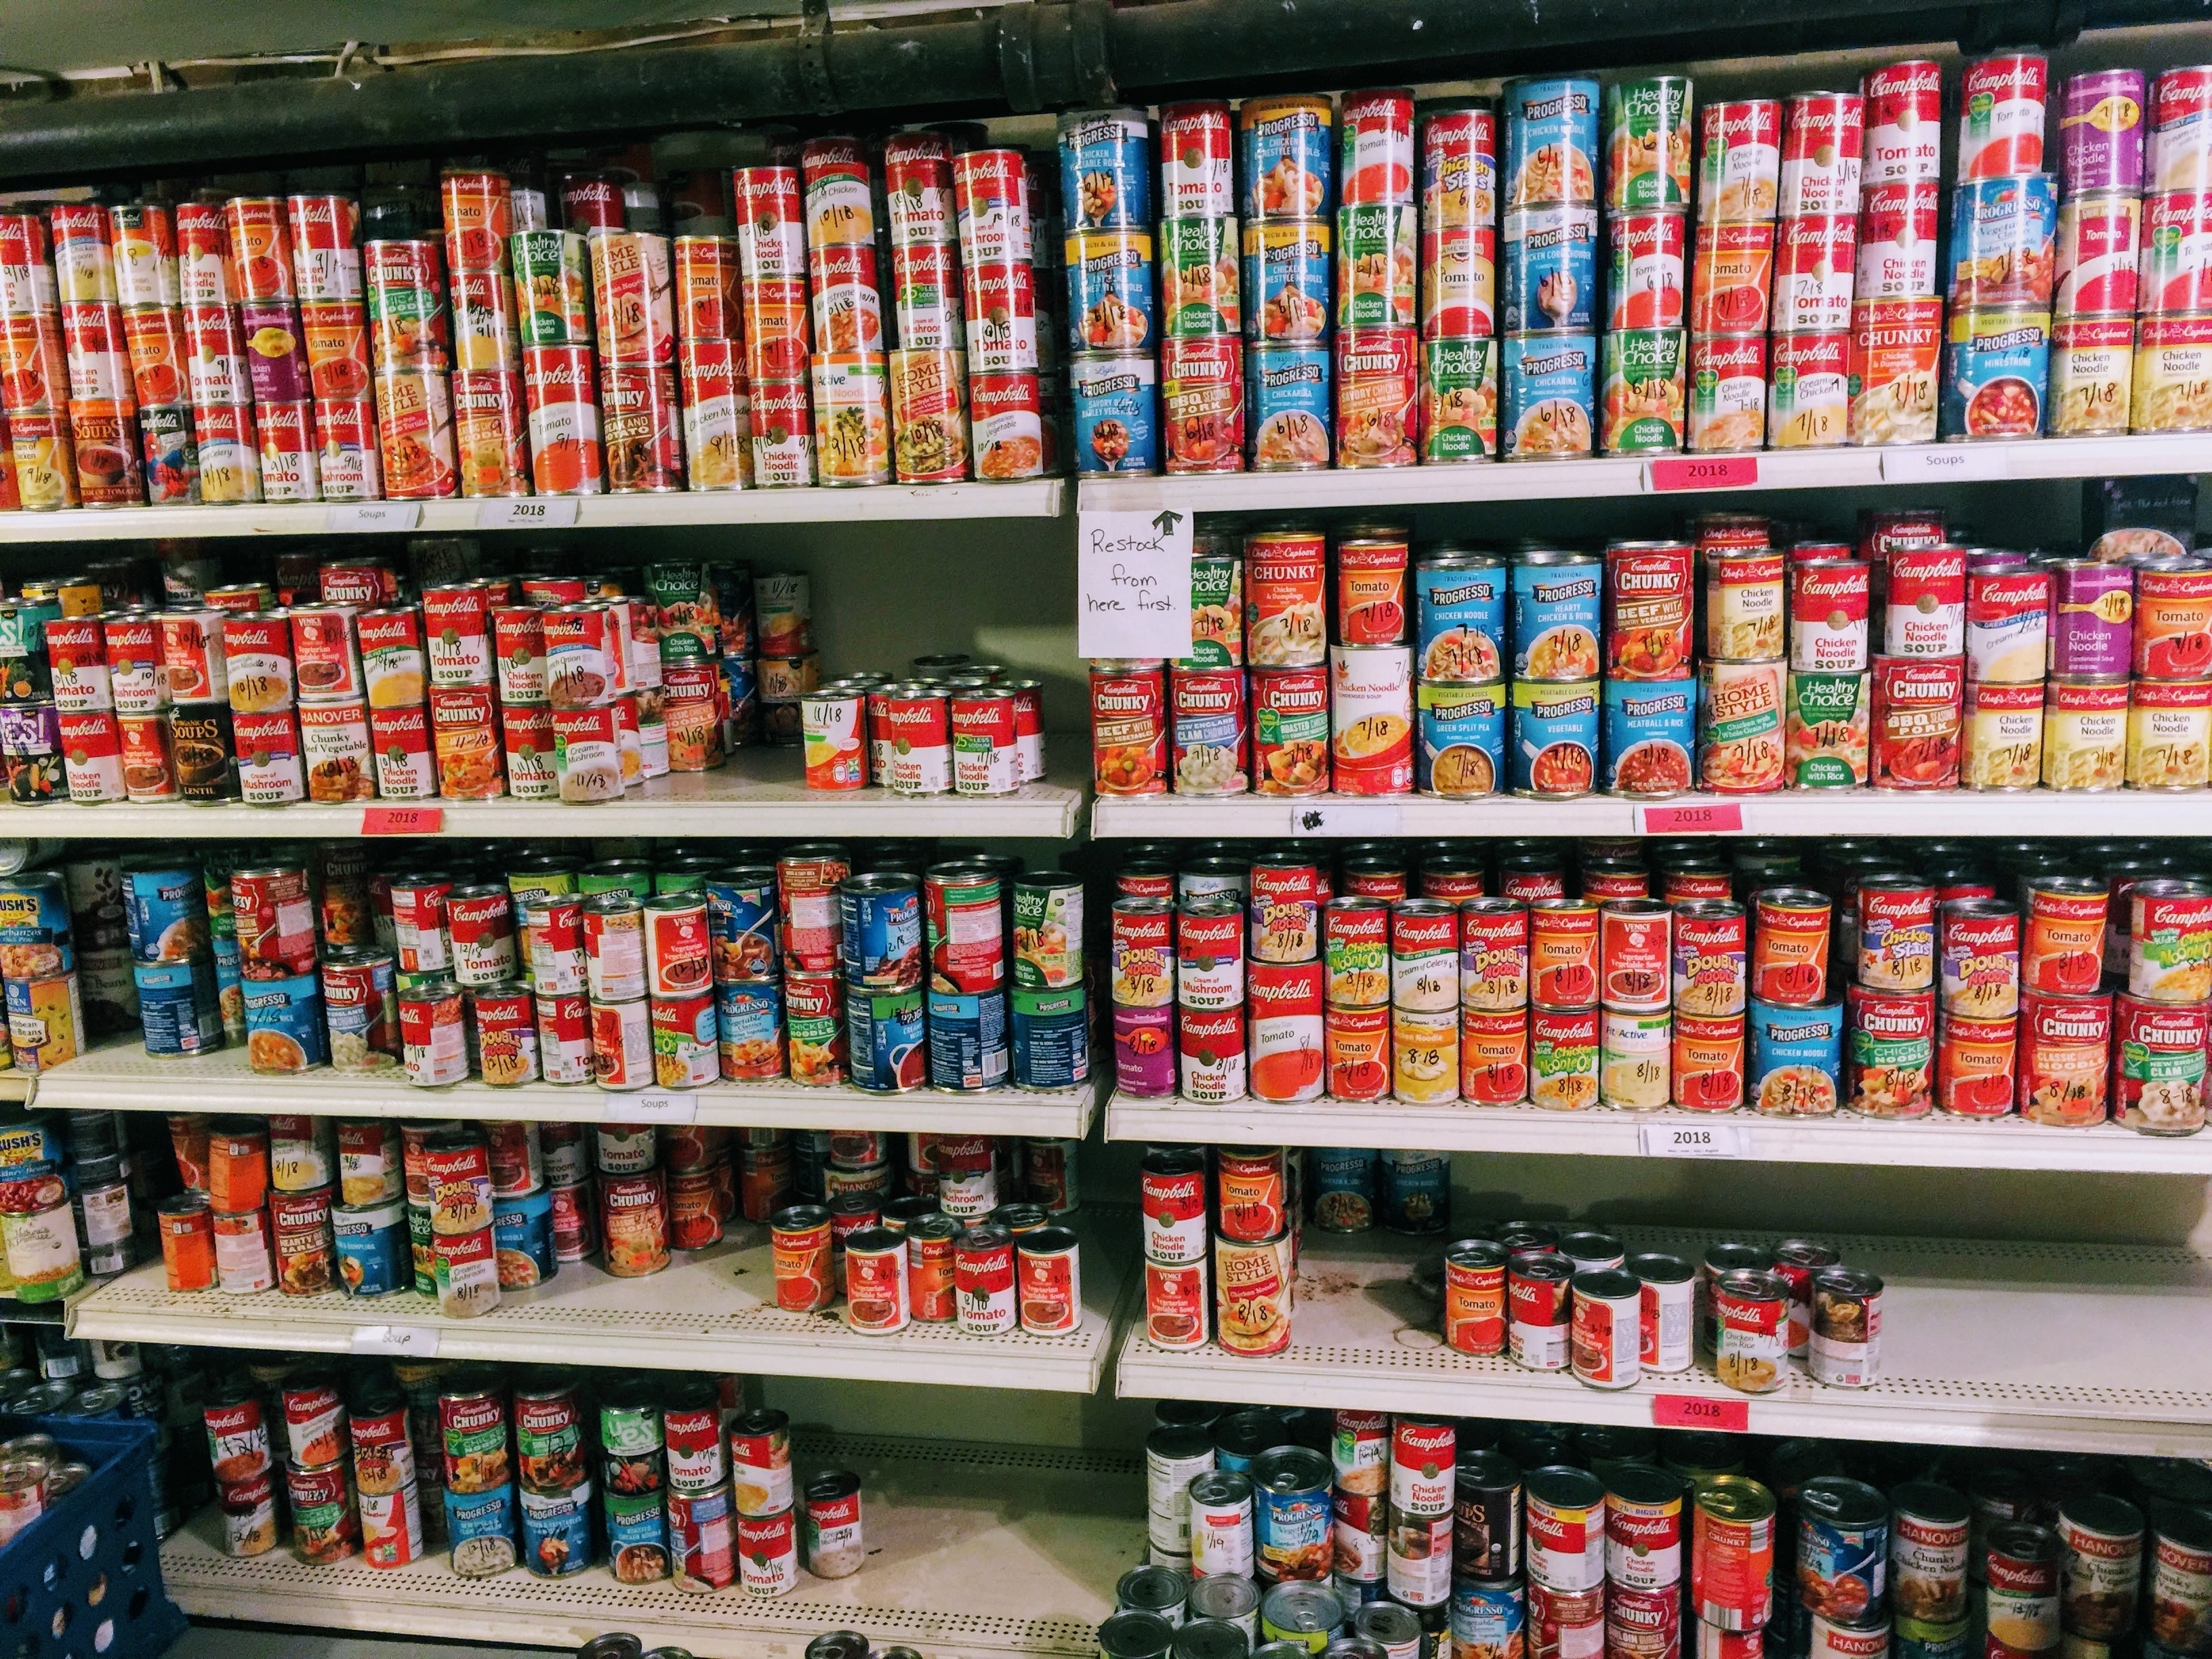 Food_Pantry_Shelf2.JPG